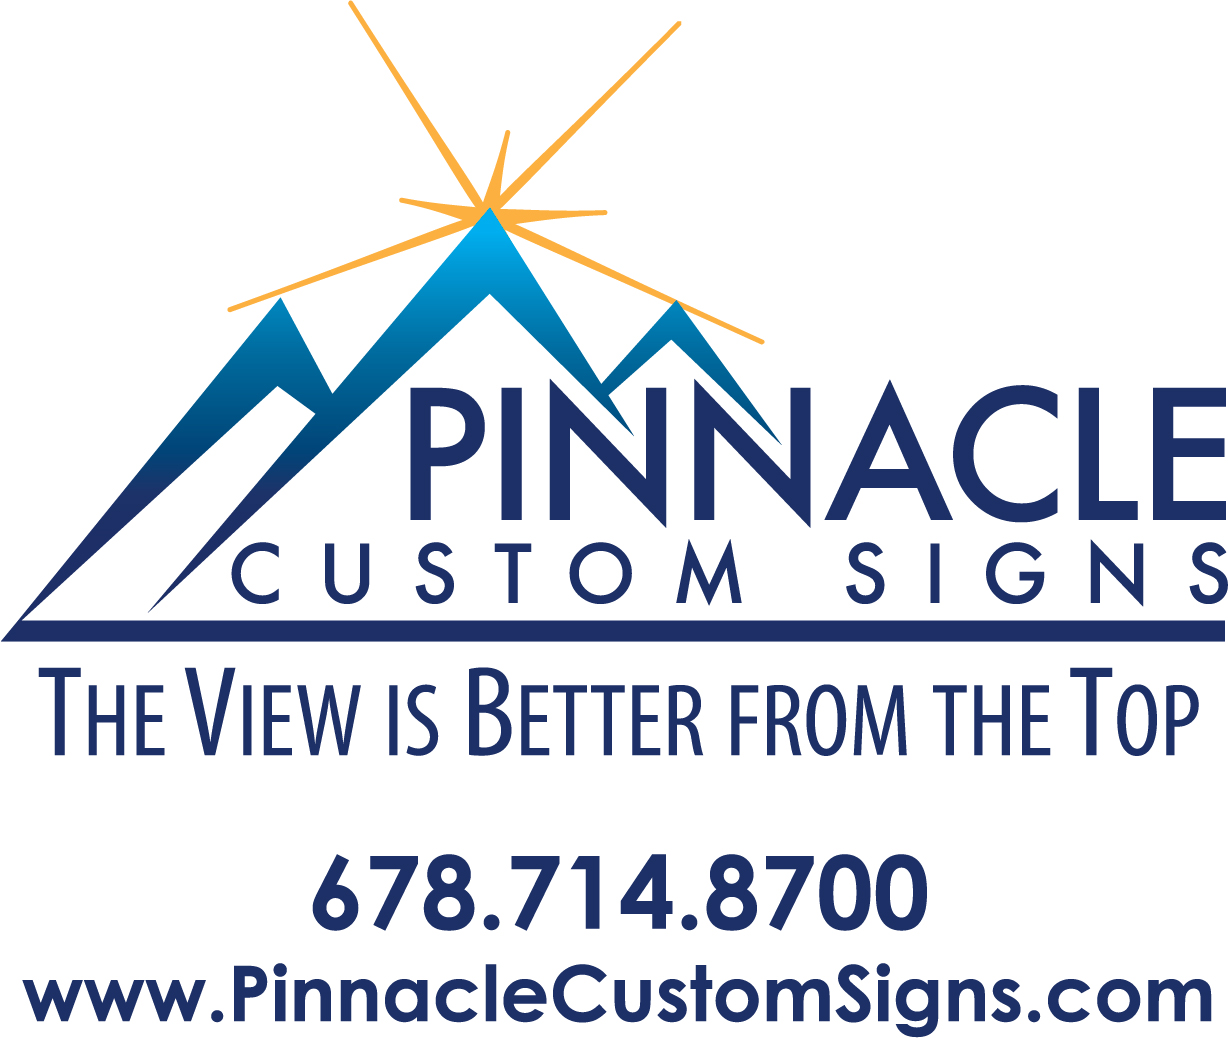 Pinnacle_Logo_Tag_Contact.jpg